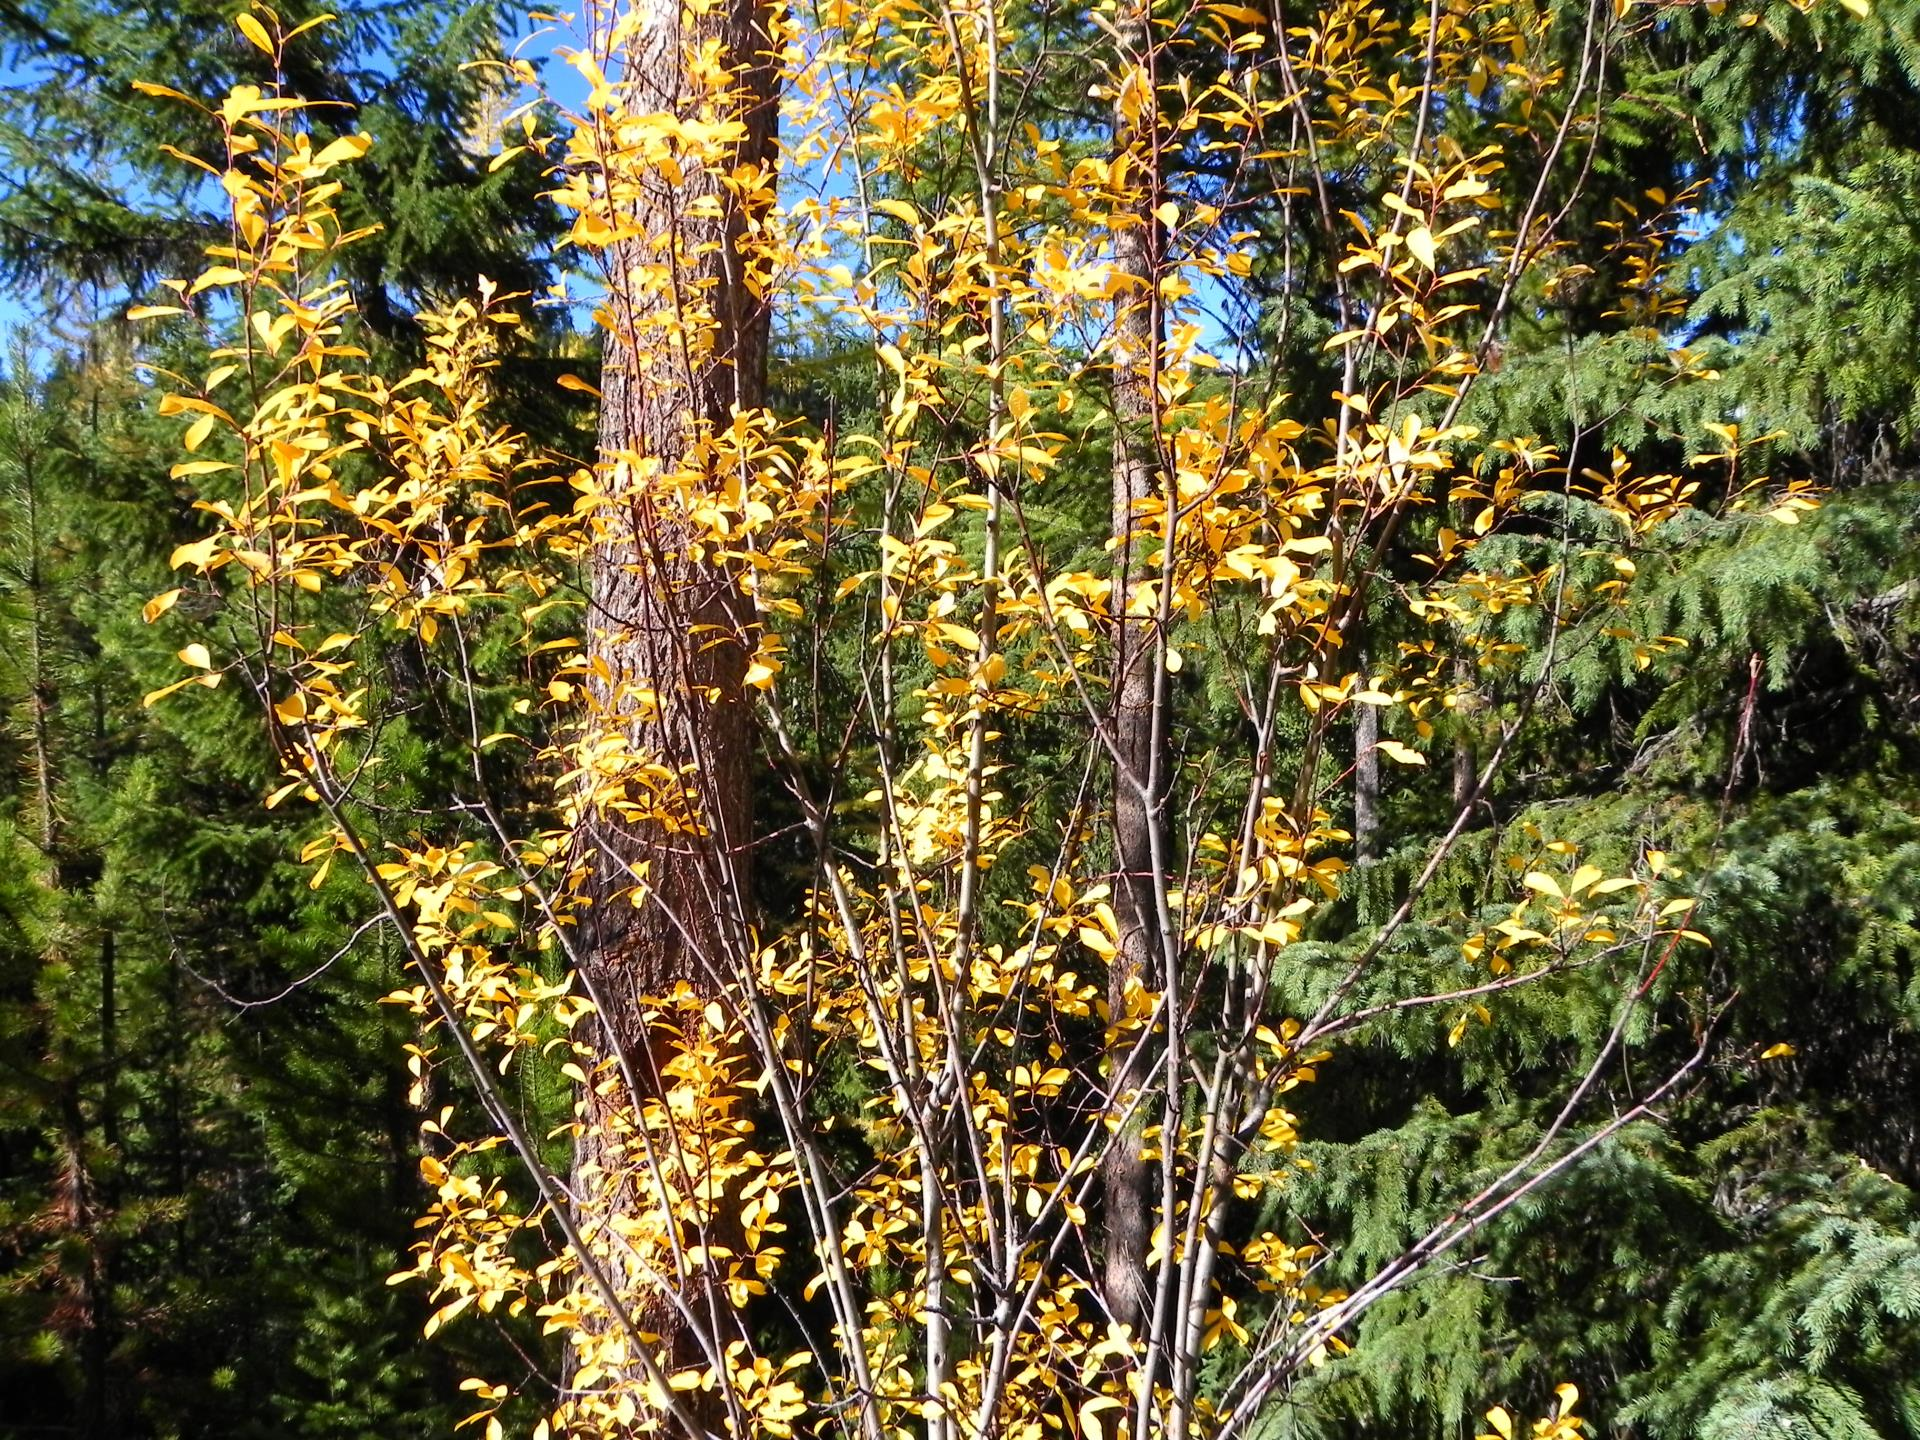 Yellow leaves within trees and green space in Missoula County.